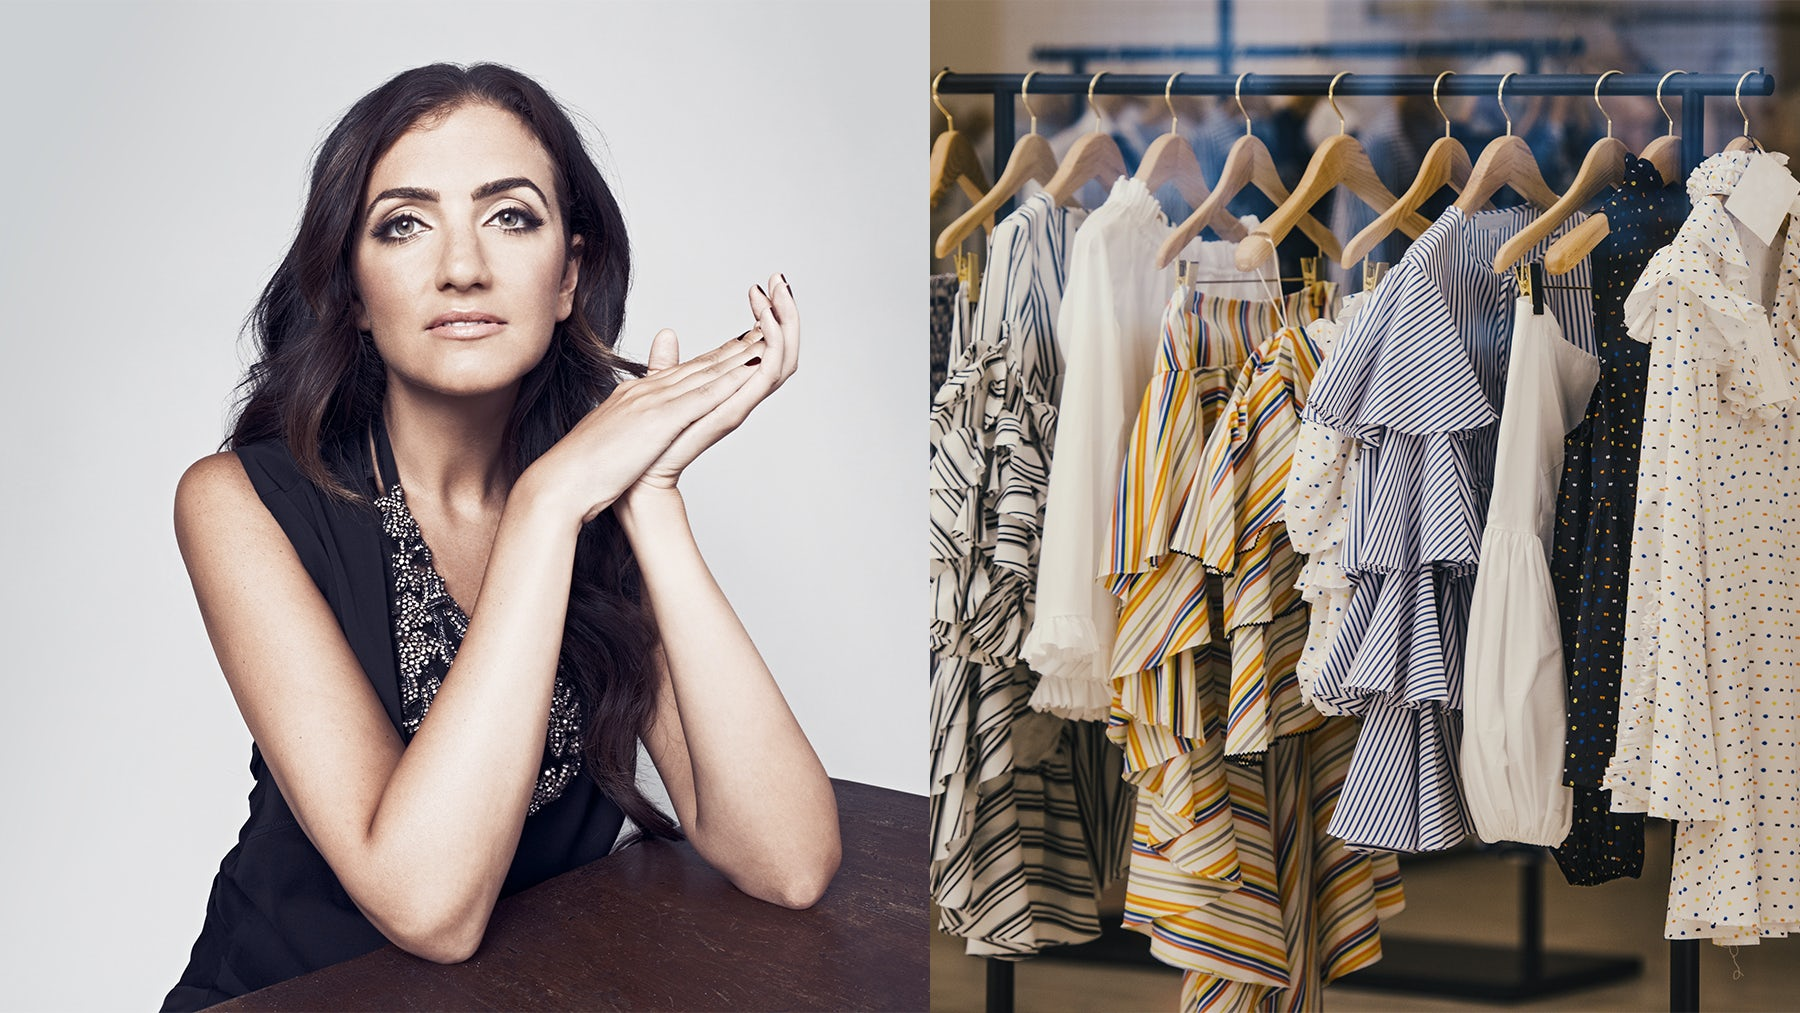 Jennifer Hyman; Clothes hanging up in a boutique | Source: Courtesy; Shutterstock